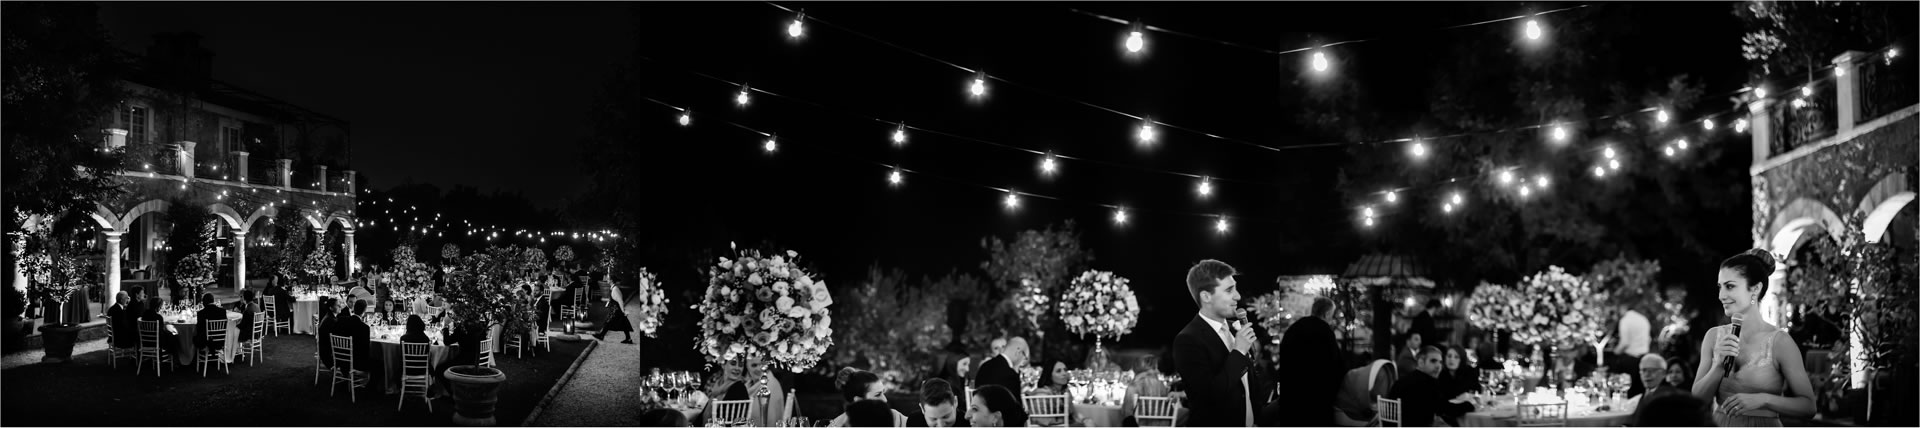 - 38 :: Wedding at Borgo Santo Pietro // San Galgano // WPPI 2018 // You look like a movie :: Luxury wedding photography - 37 ::  - 38